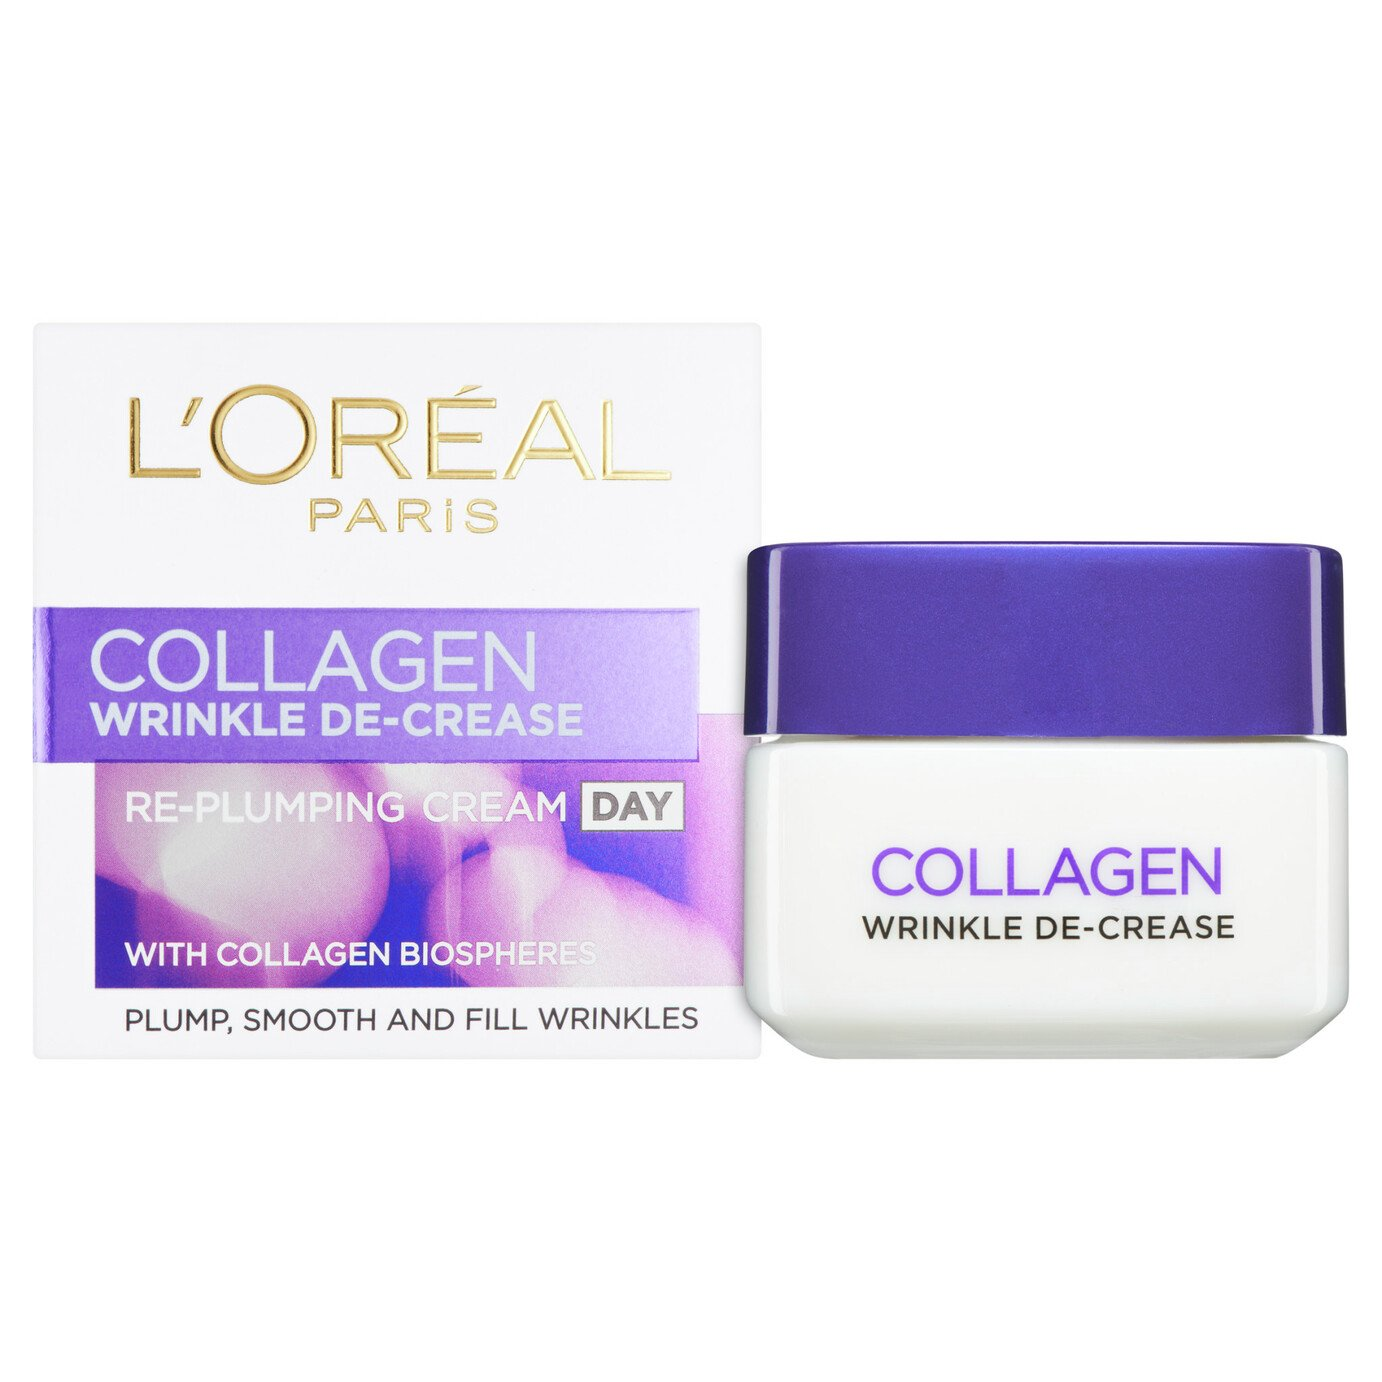 L'Oreal Collagen Wrinkle De-Crease Day Cream - 50ml